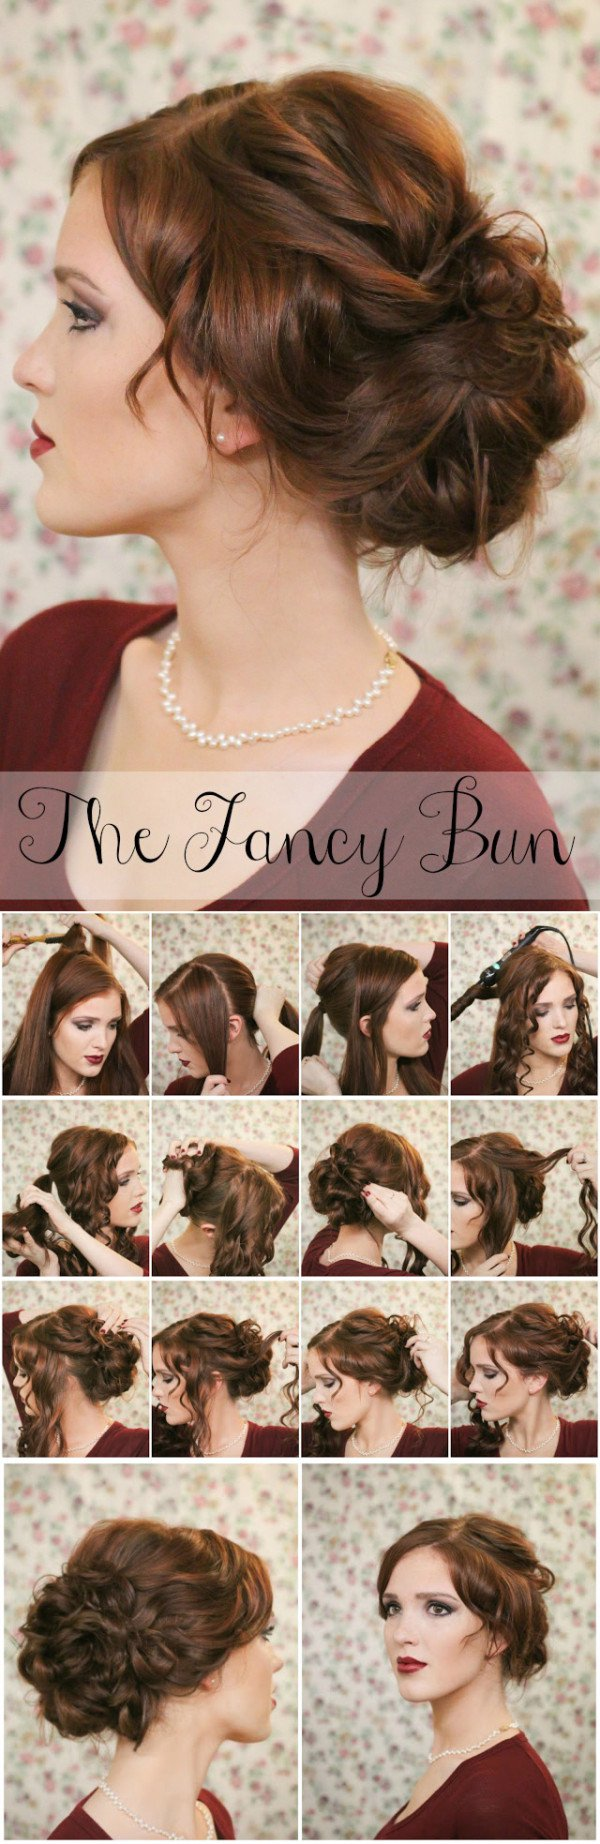 17 easy diy tutorials for glamorous and cute hairstyle bman and 17 easy diy tutorials for glamorous and cute hairstyle solutioingenieria Image collections